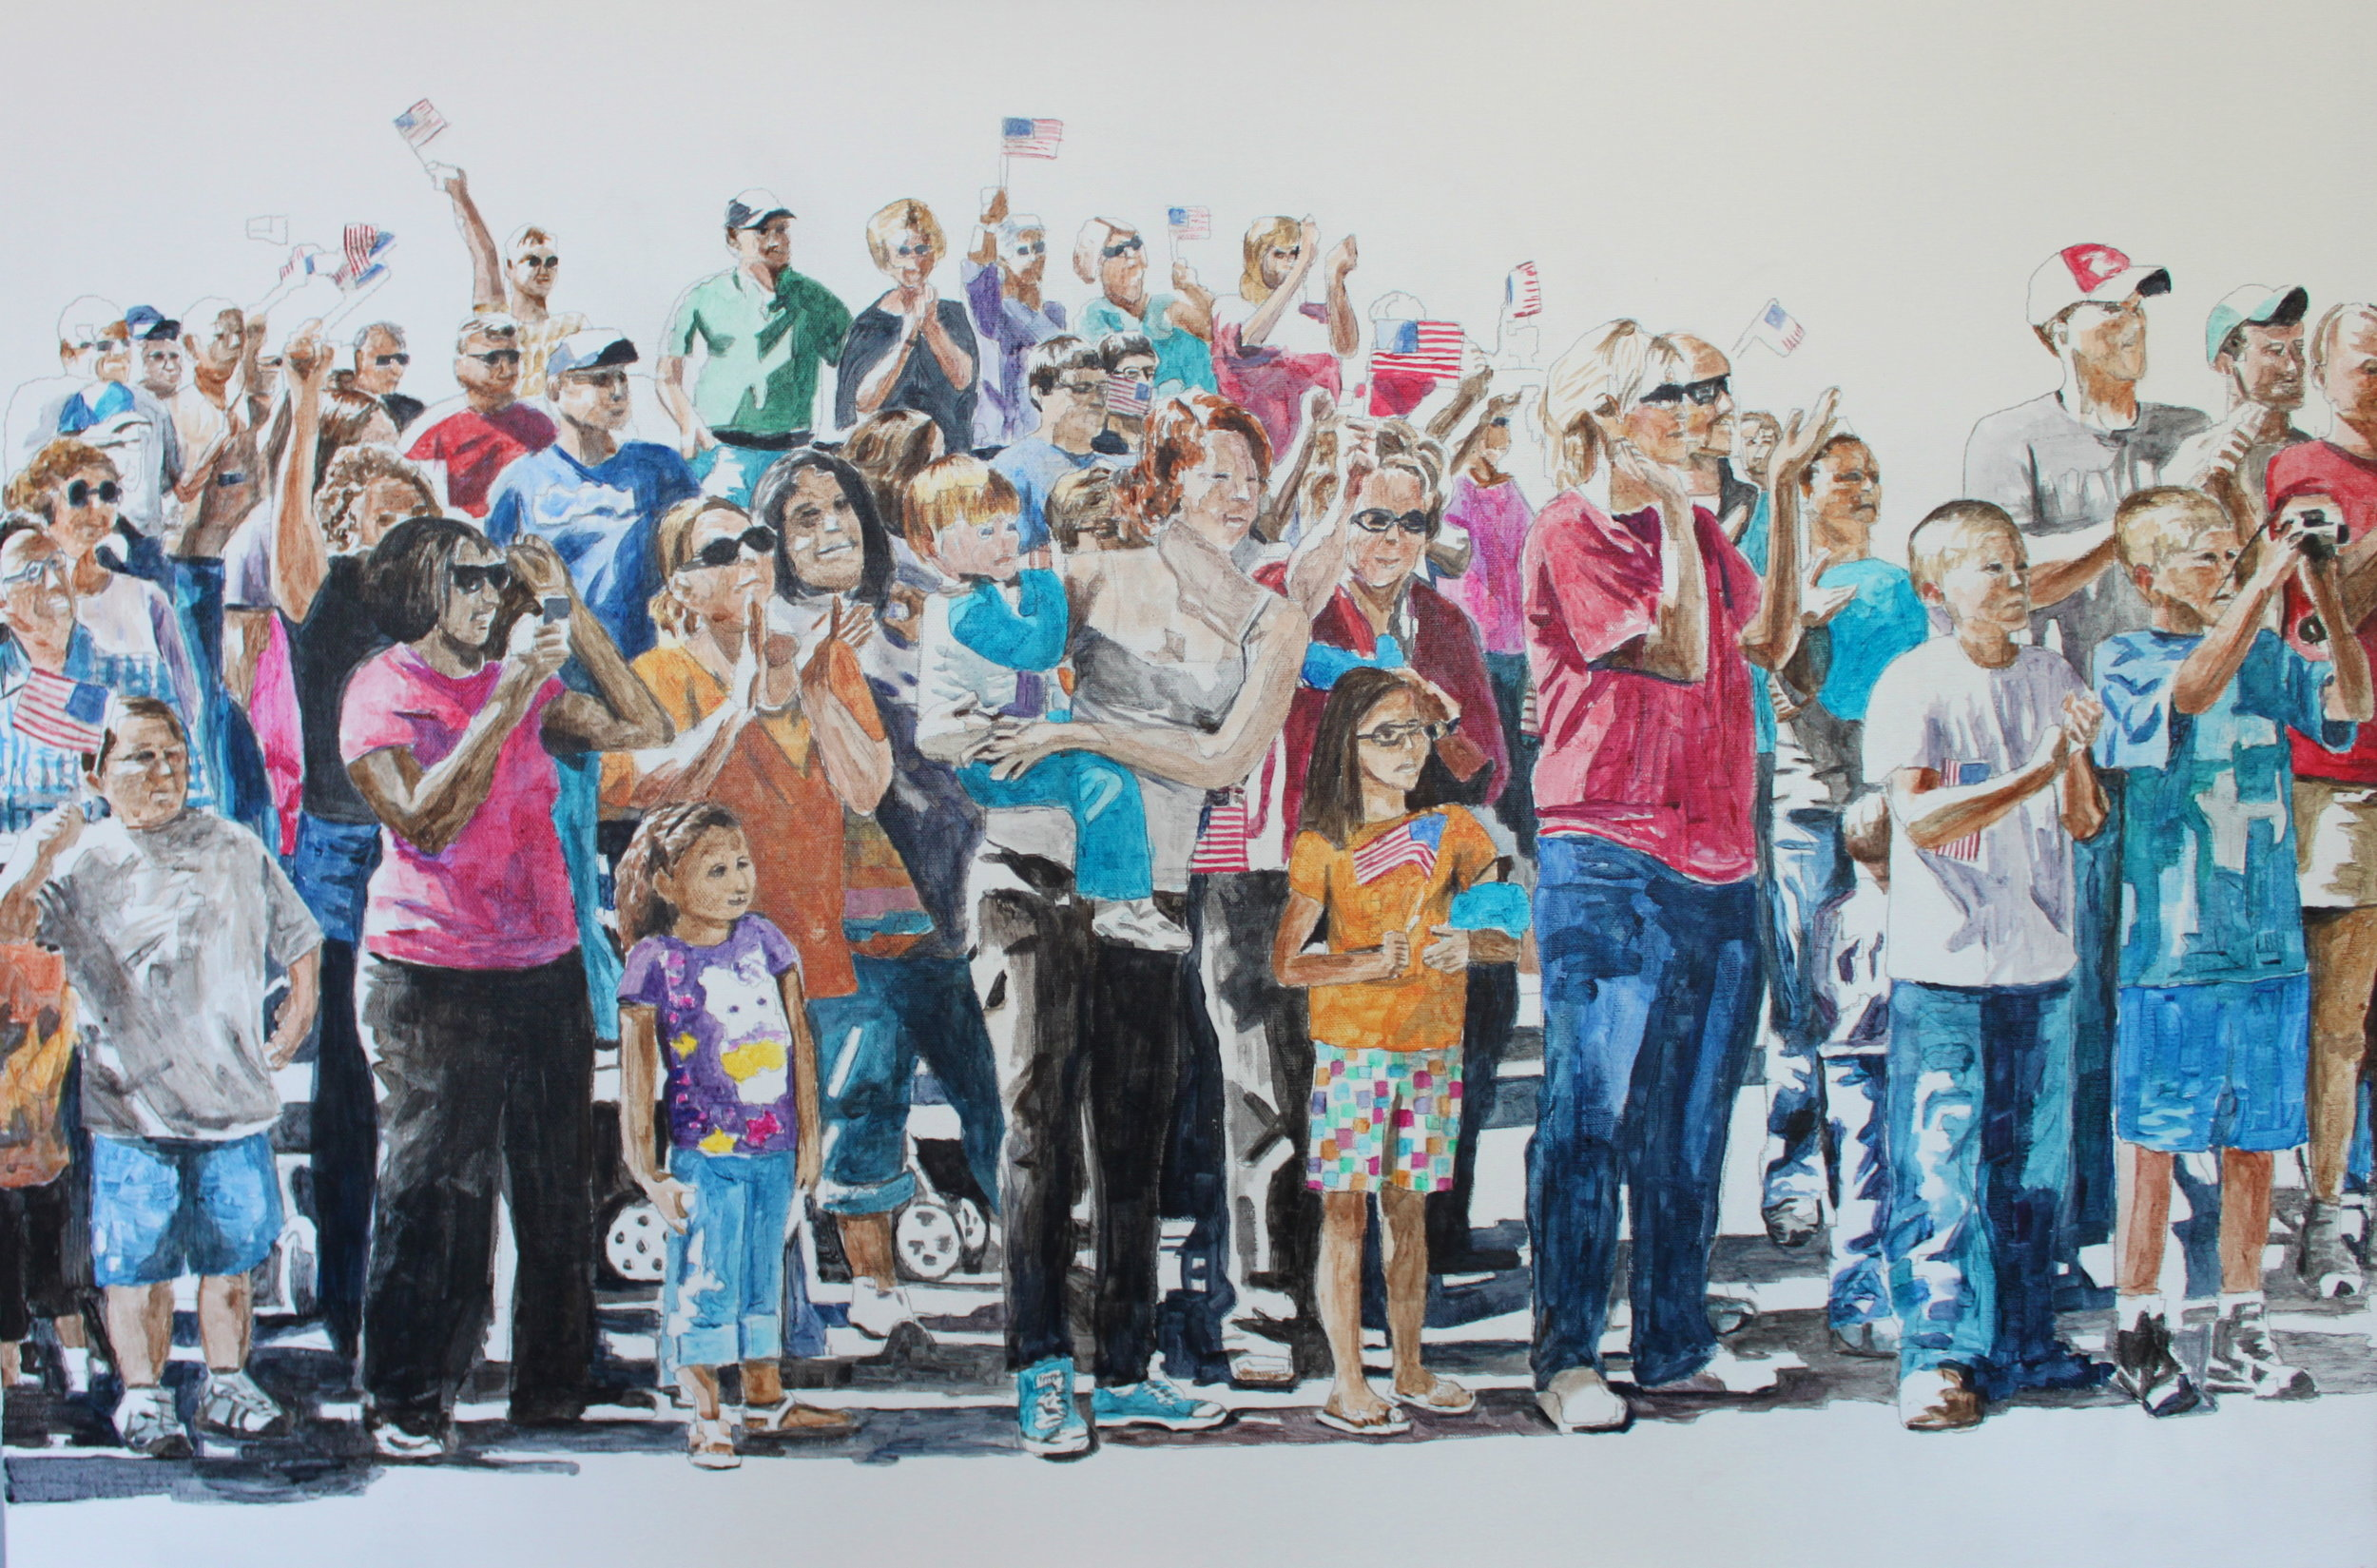 Parade Crowd 2, 2016, 24 x 36 inches acrylic on canvas